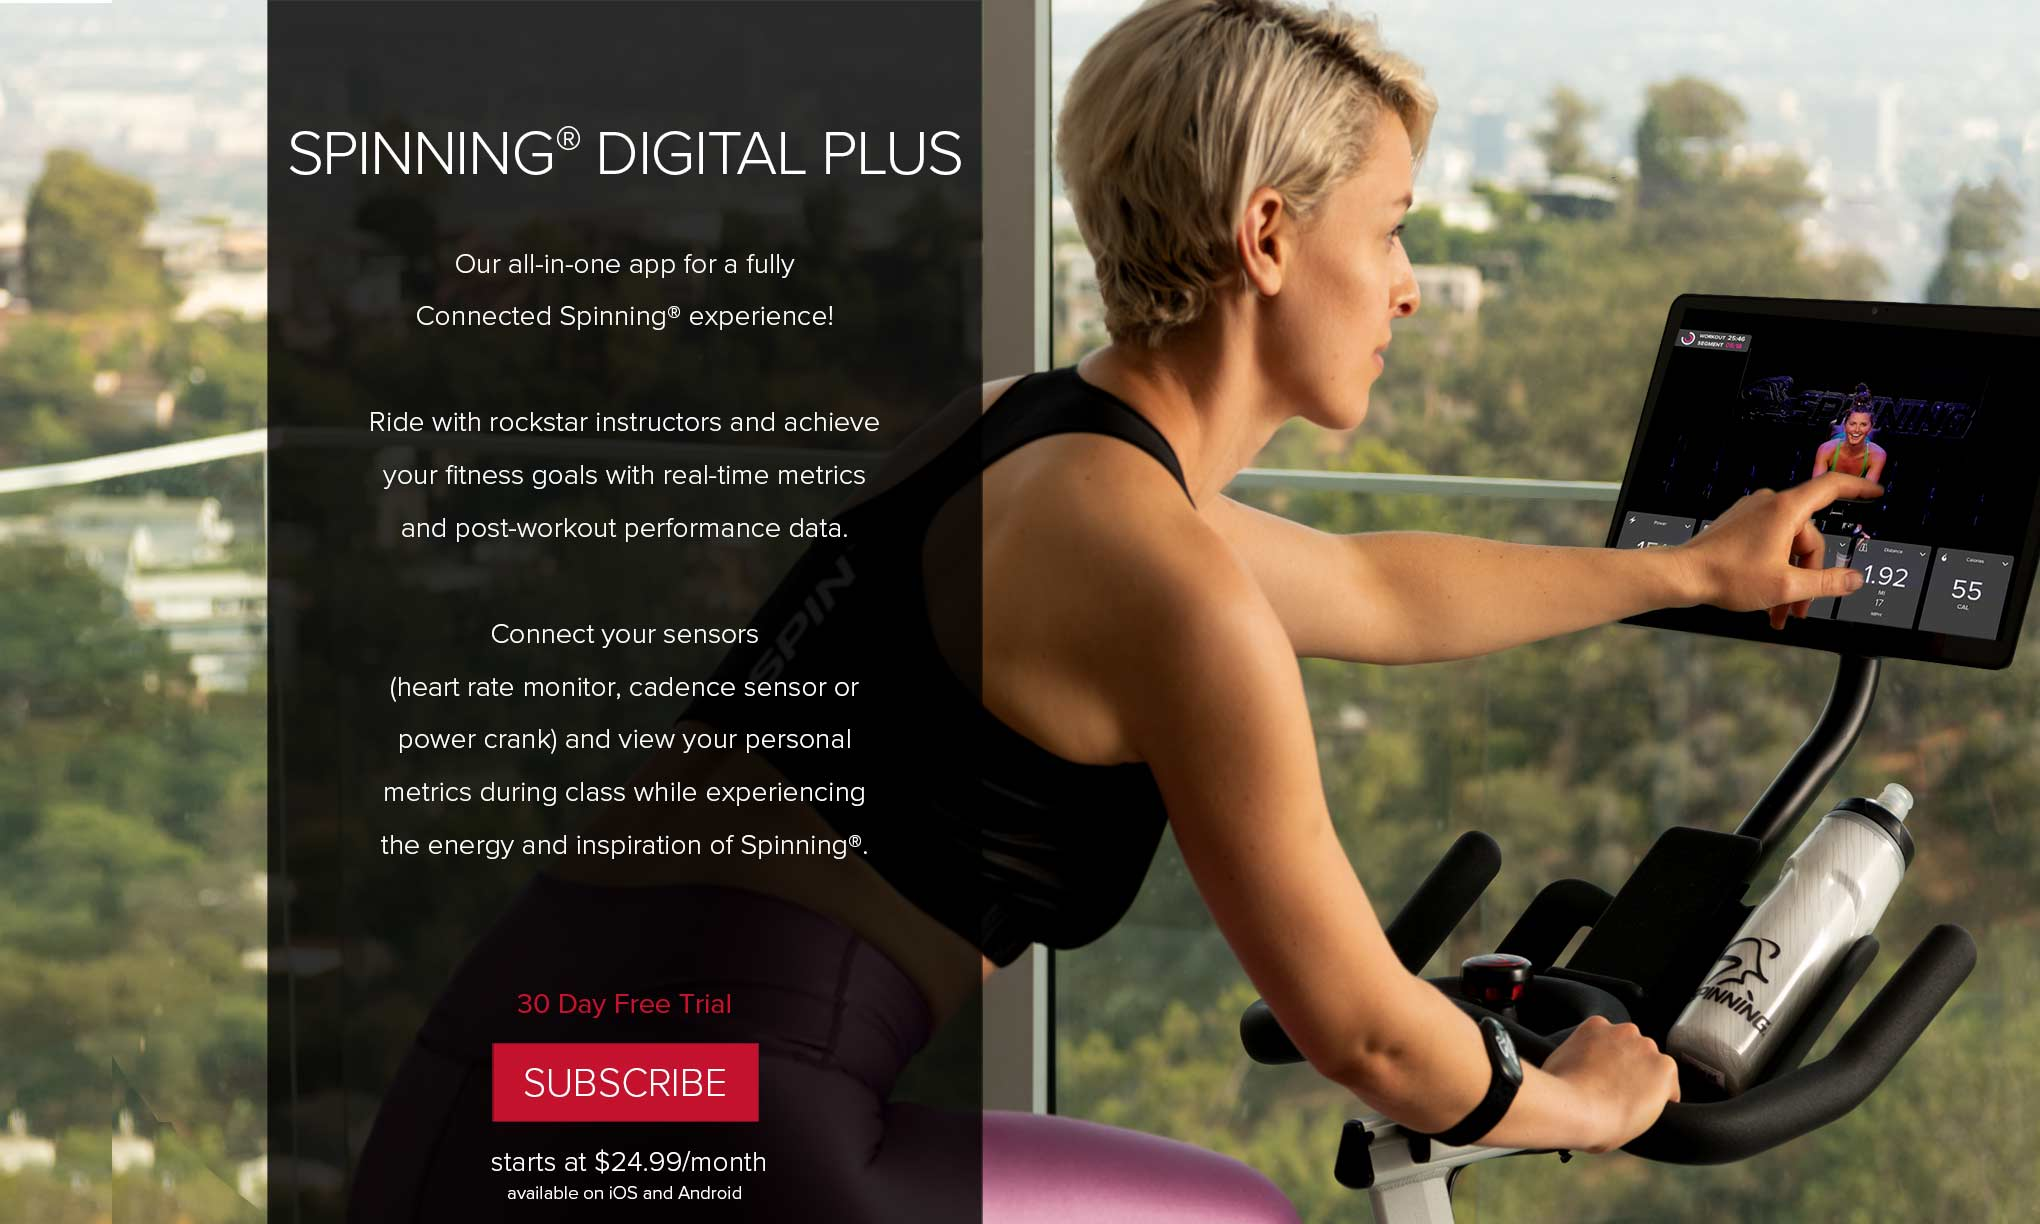 Spinning® Digital Plus - Our all-in-one app for fully Connected Spinning® experience! Ride with rockstar instructors and achieve your fitness goals with real-time metrics and post-workout performance data. Connect your sensors (heart rate monitor, cadence sensor or power crank) and view your personal metrics during class while experiencing the energy and inspiration of Spinning®. 30 Day free trial. Subscribe - starts at $24.99/month.